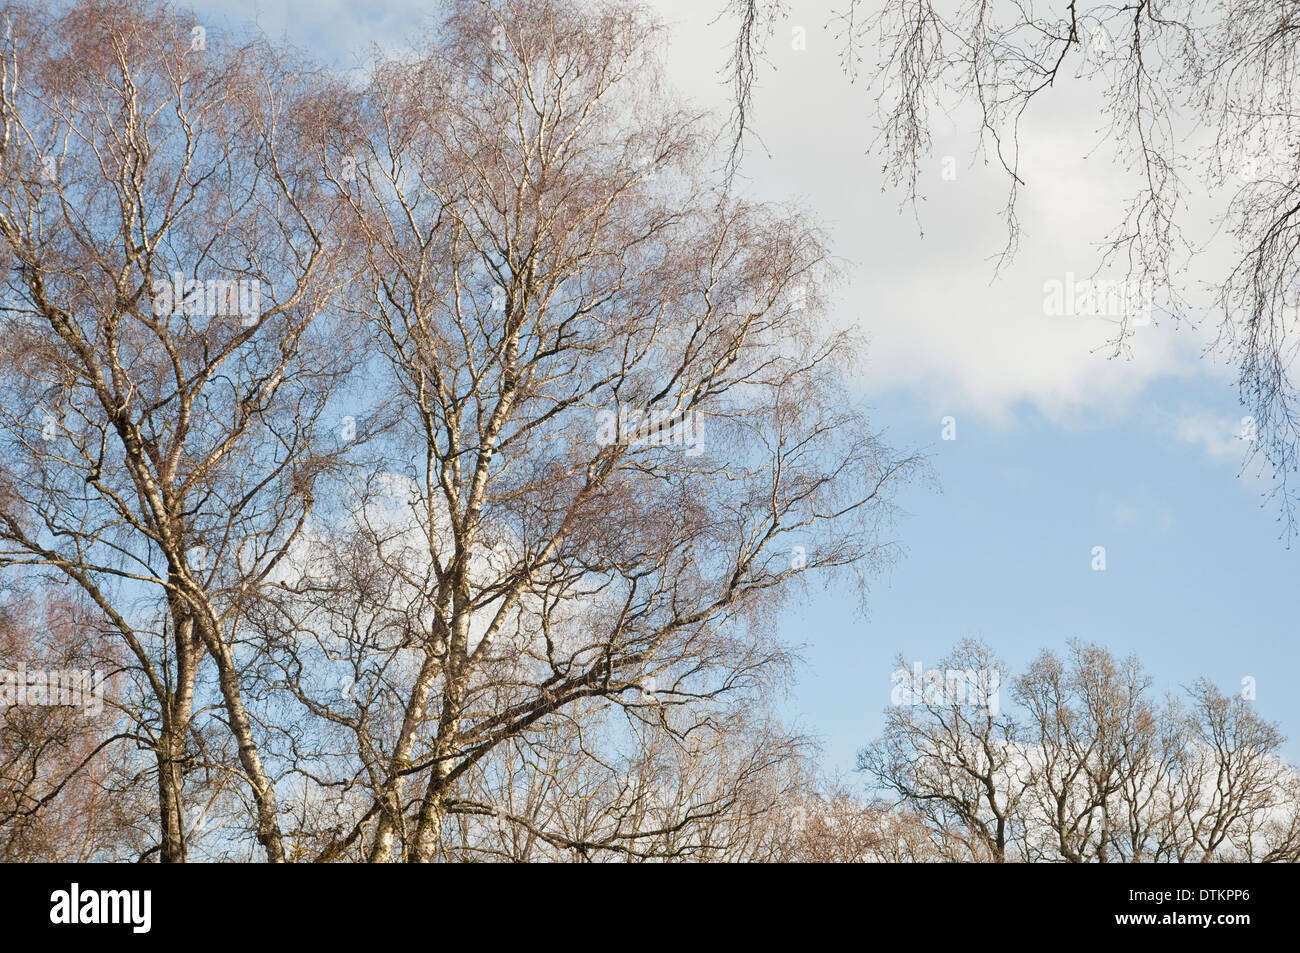 Branches and delicate fine twig tracery of Silver Birch Trees (Betula pendula) shown against a pale blue winter sky. UK. - Stock Image